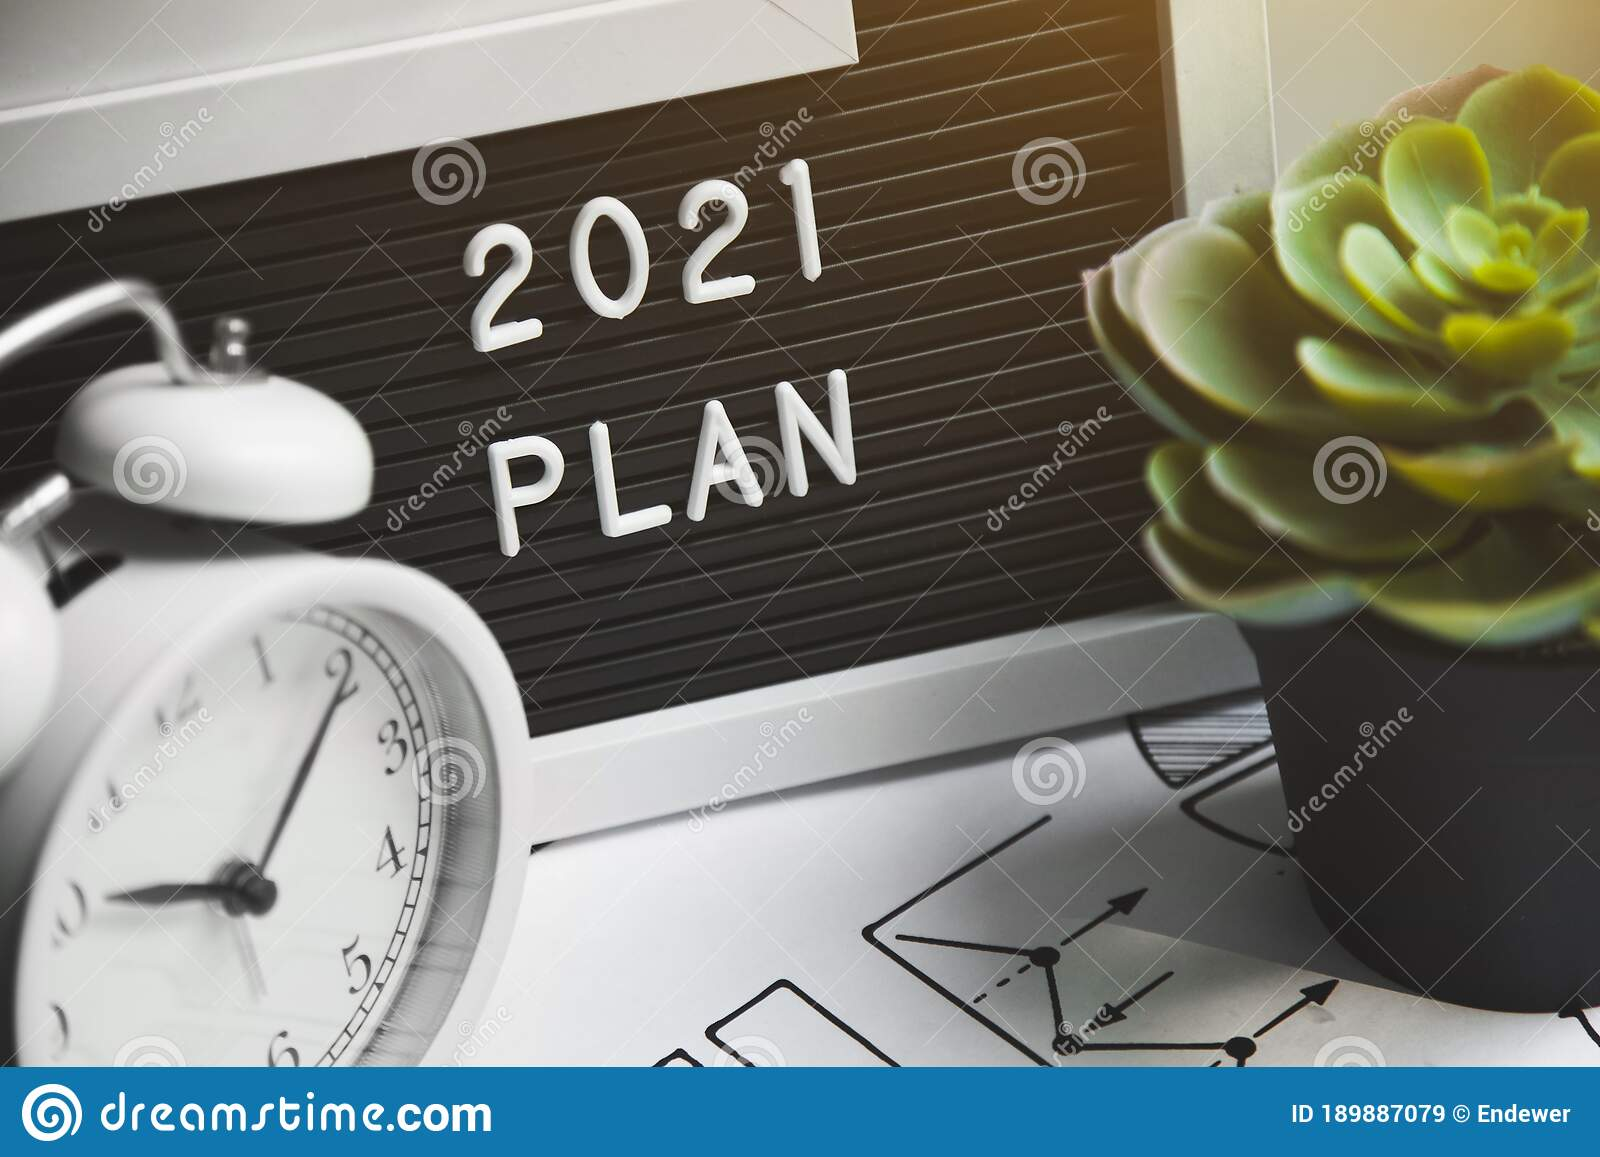 12 New Year Goal, Plan, Action. Office Accessories. Business